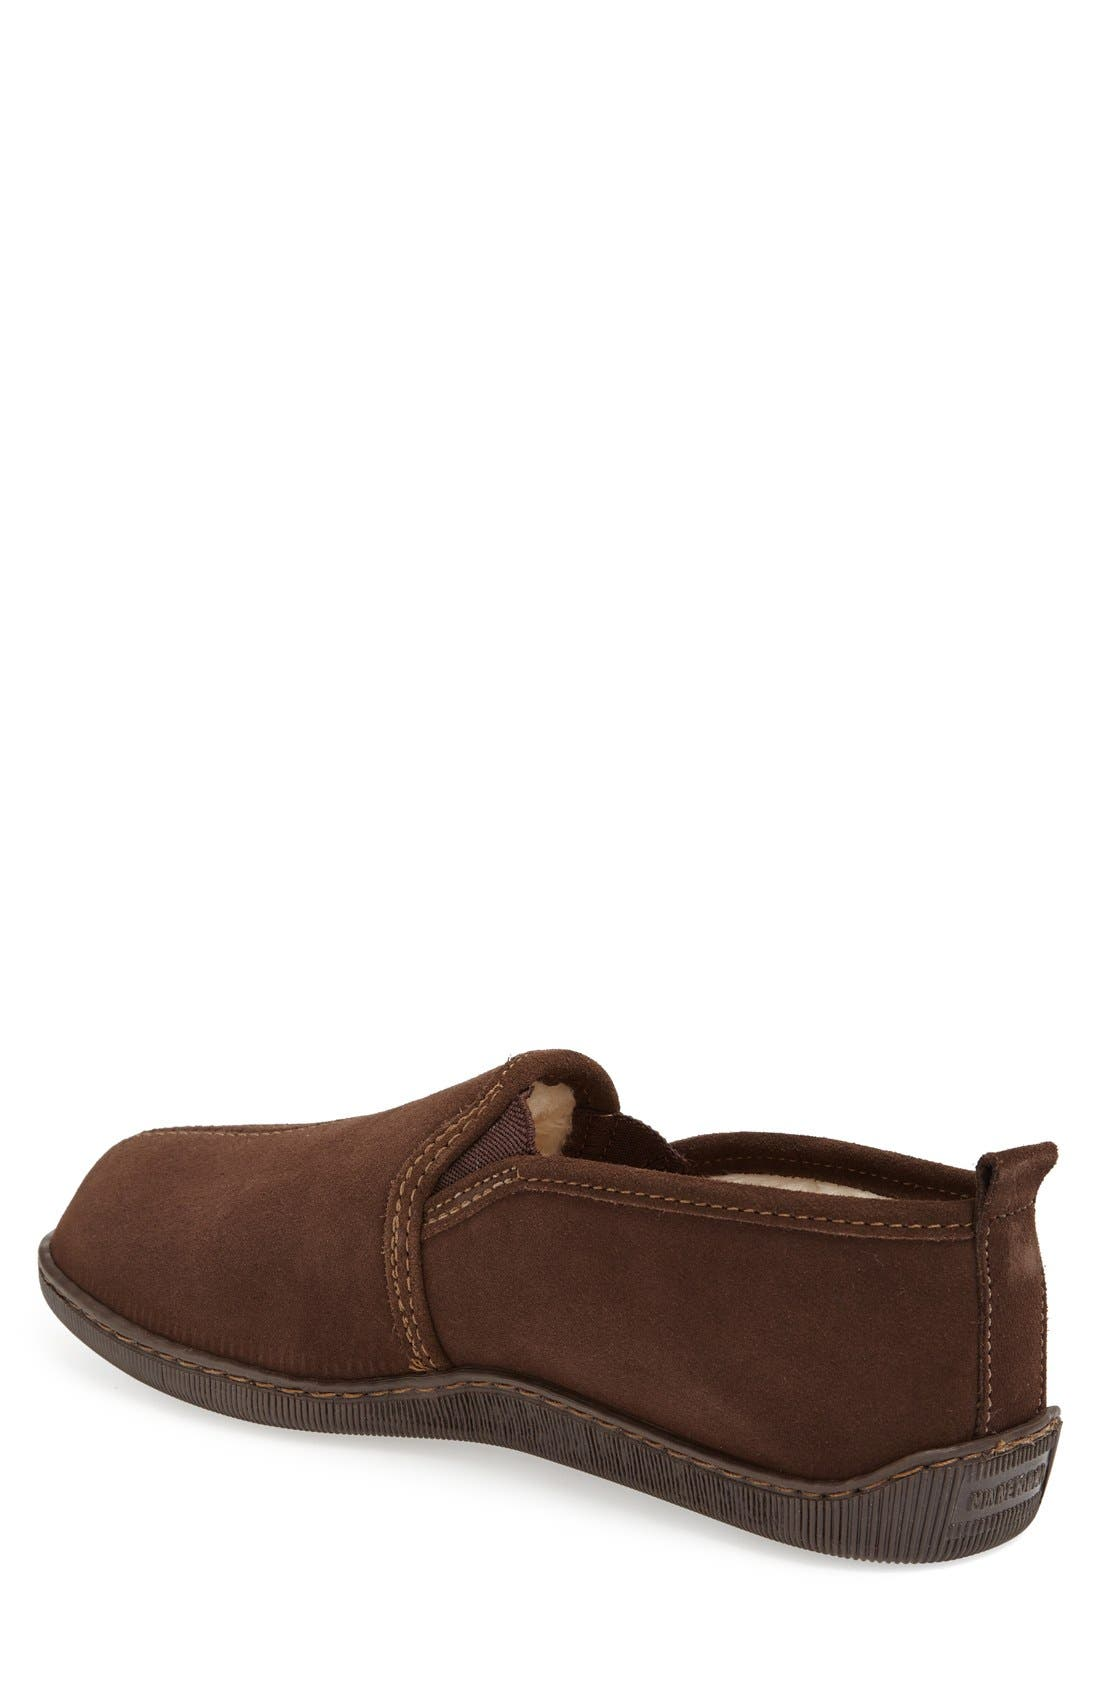 Suede Slipper,                             Alternate thumbnail 4, color,                             CHOCOLATE